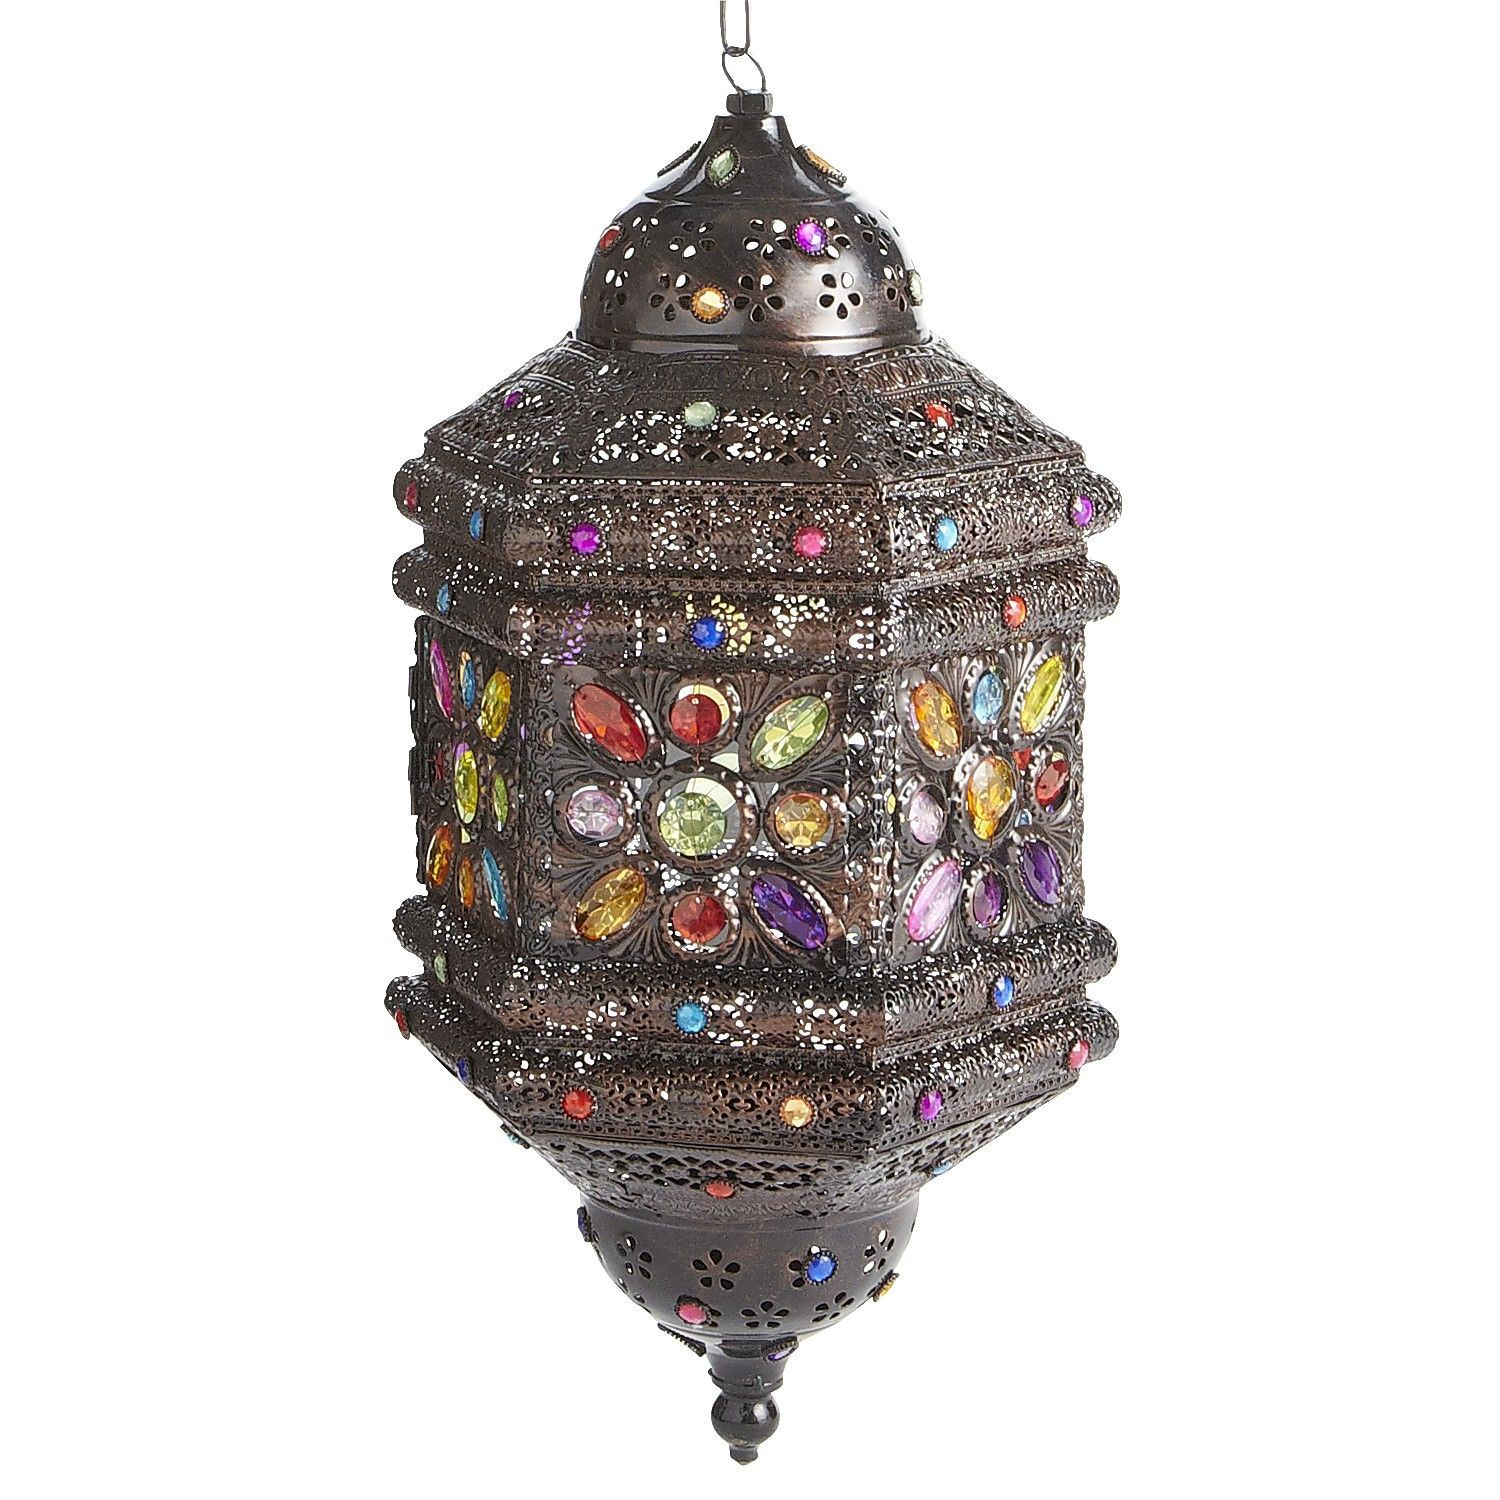 I wish I could find a place to hang this Caravan Gem Hanging Lantern from Pier 1 Imports but I think it would look strange to hang something like this in ...  sc 1 st  Pinterest & I wish I could find a place to hang this Caravan Gem Hanging ... azcodes.com